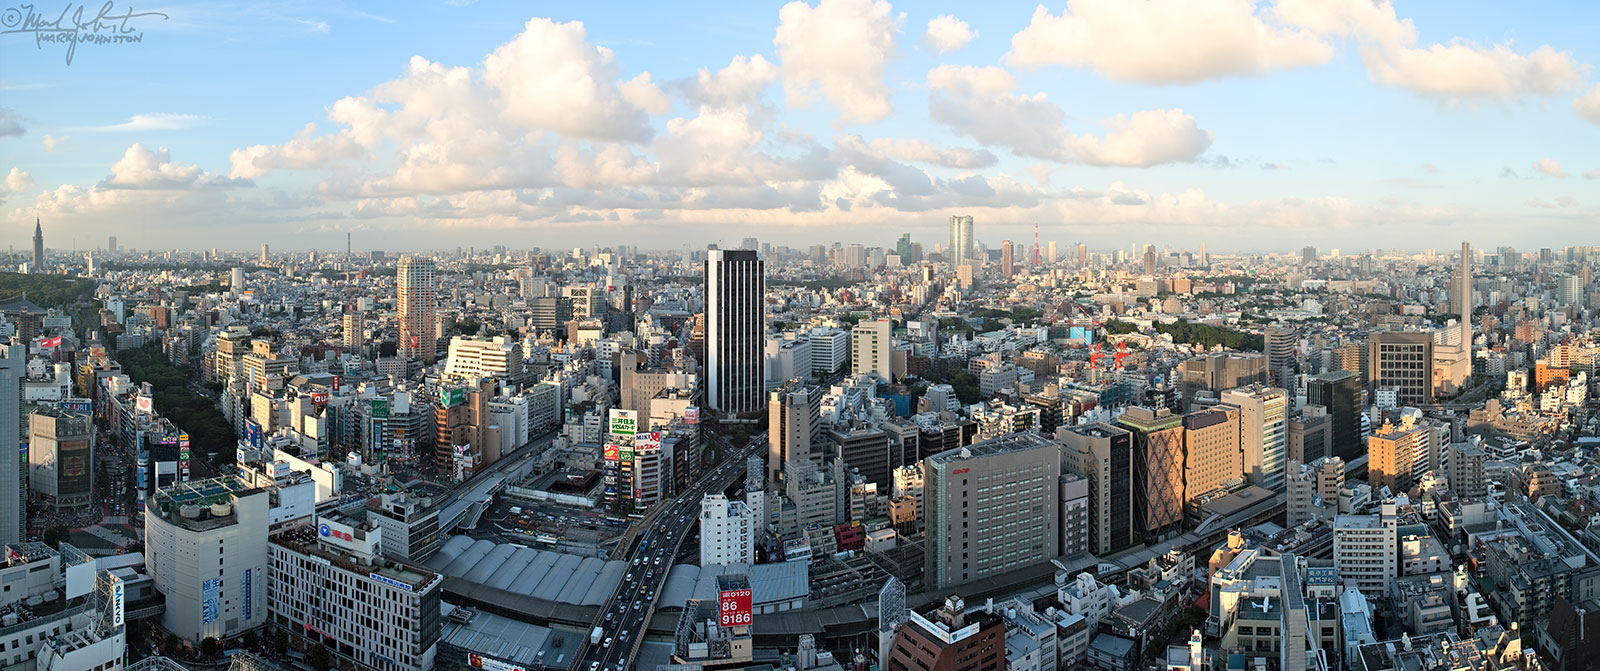 """Tokyo's Shibuya district. The shiny cylinder just right of center in the distance is Roppongi Hills, with red-and-white Tokyo Tower just to its right. The famous """"Shibuya Scramble"""" intersection is the area with the white bands painted on the street at the lower left. There is an airplane on the roof of a building at lower right."""